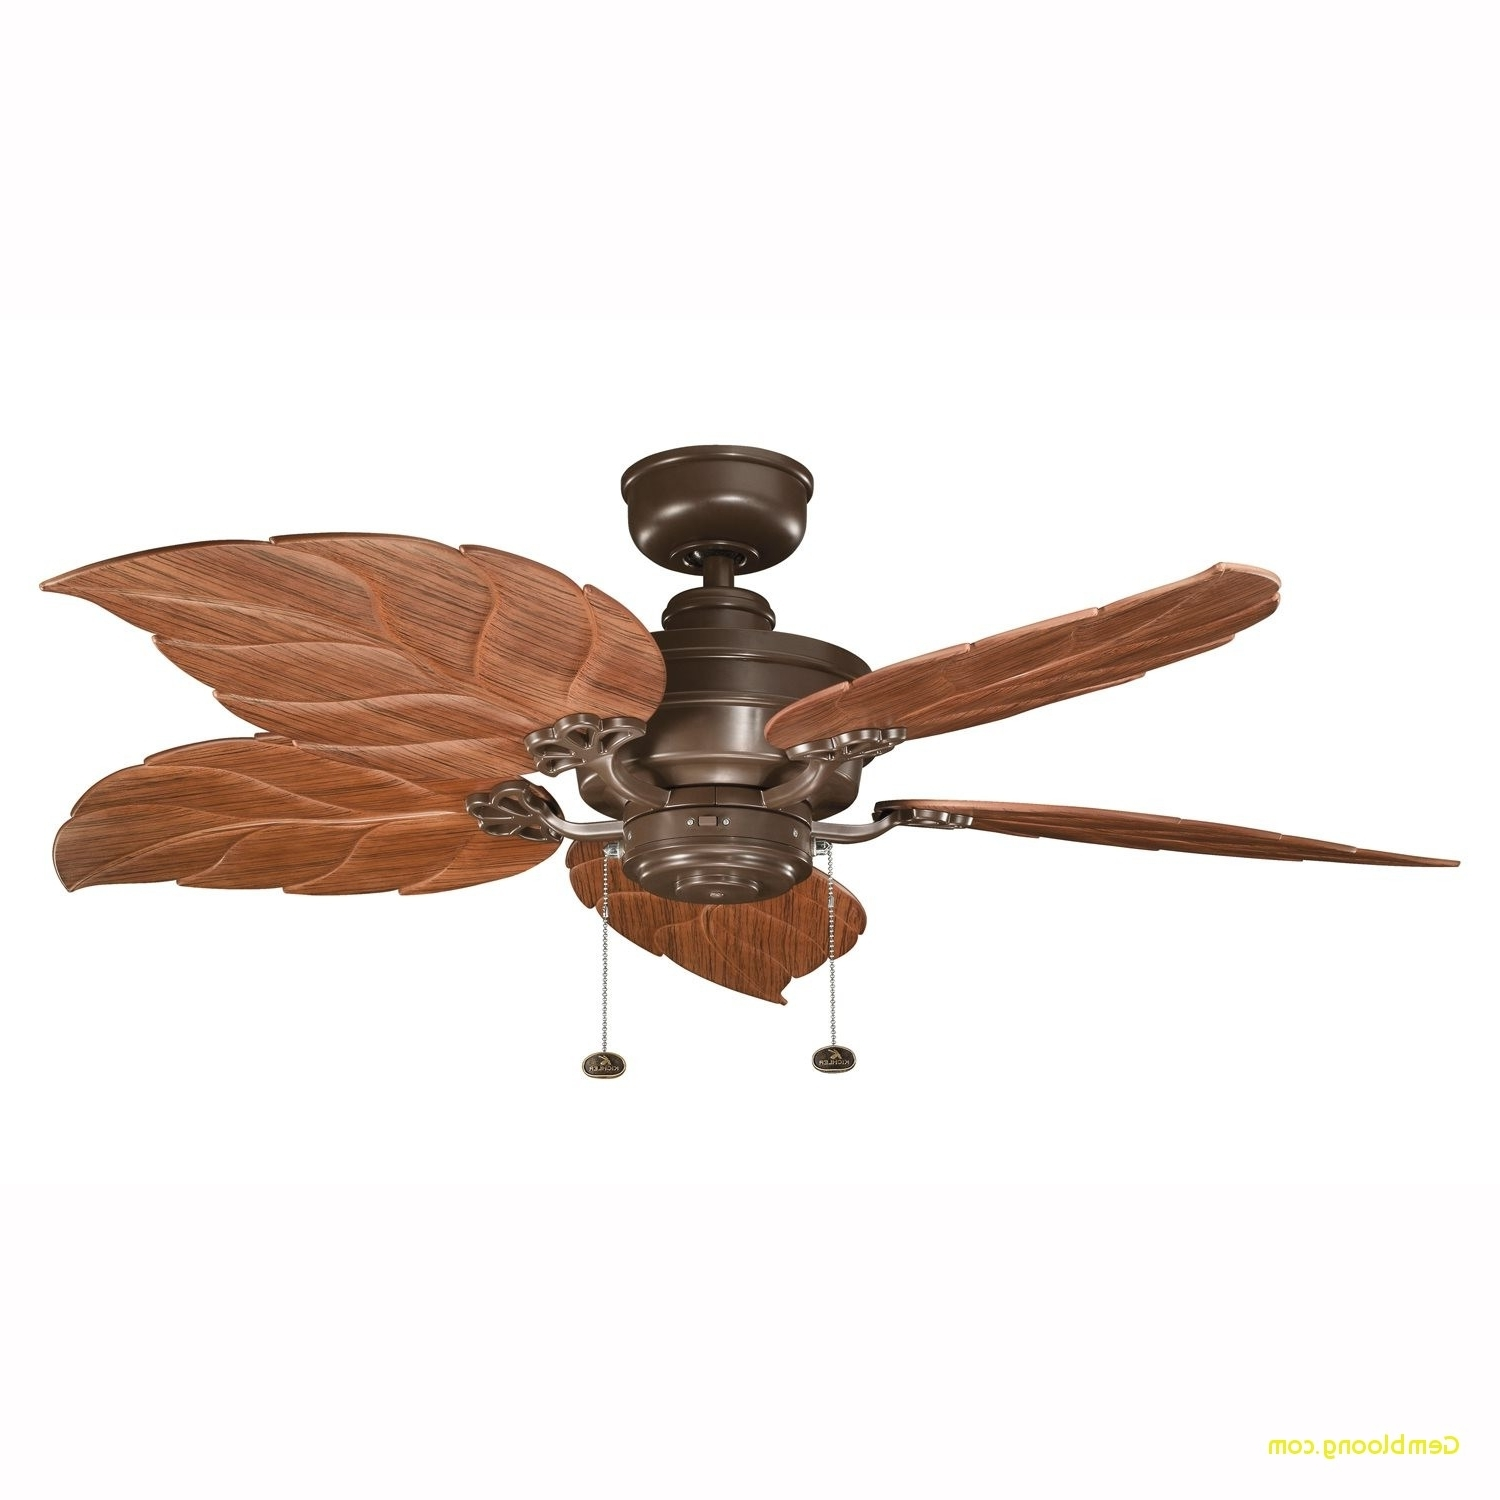 11 Luxury Bluetooth Ceiling Fan (Gallery 20 of 20)